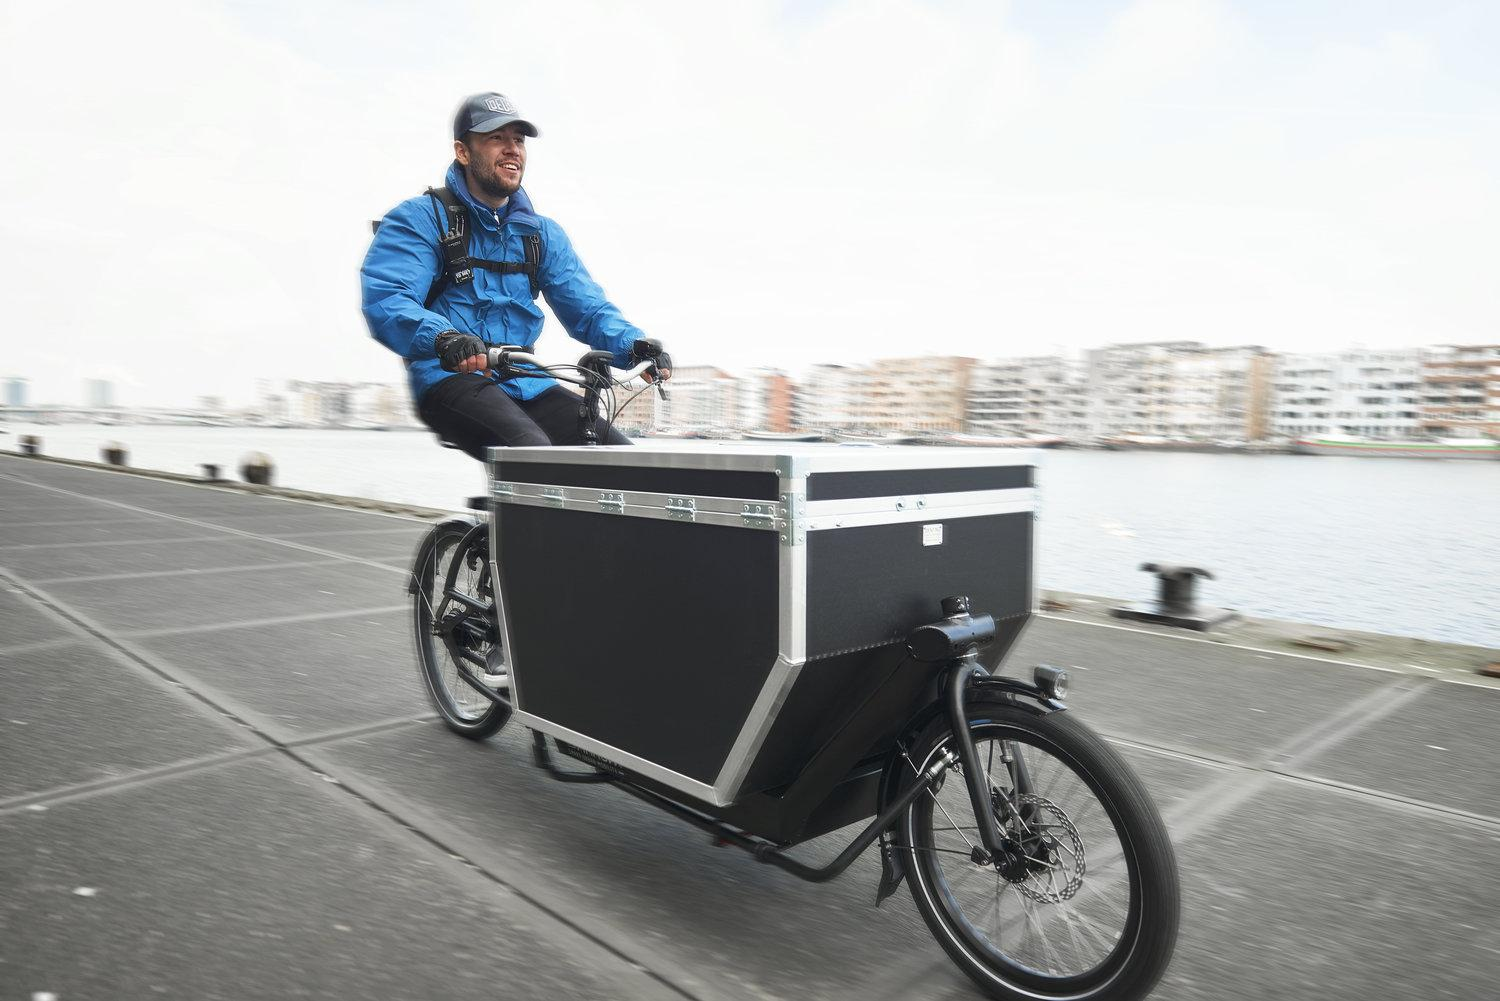 The city of London is rolling out a new program that incentivizes companies to switch some or all of their deliveries from motorized transport to bicycle-powered options.